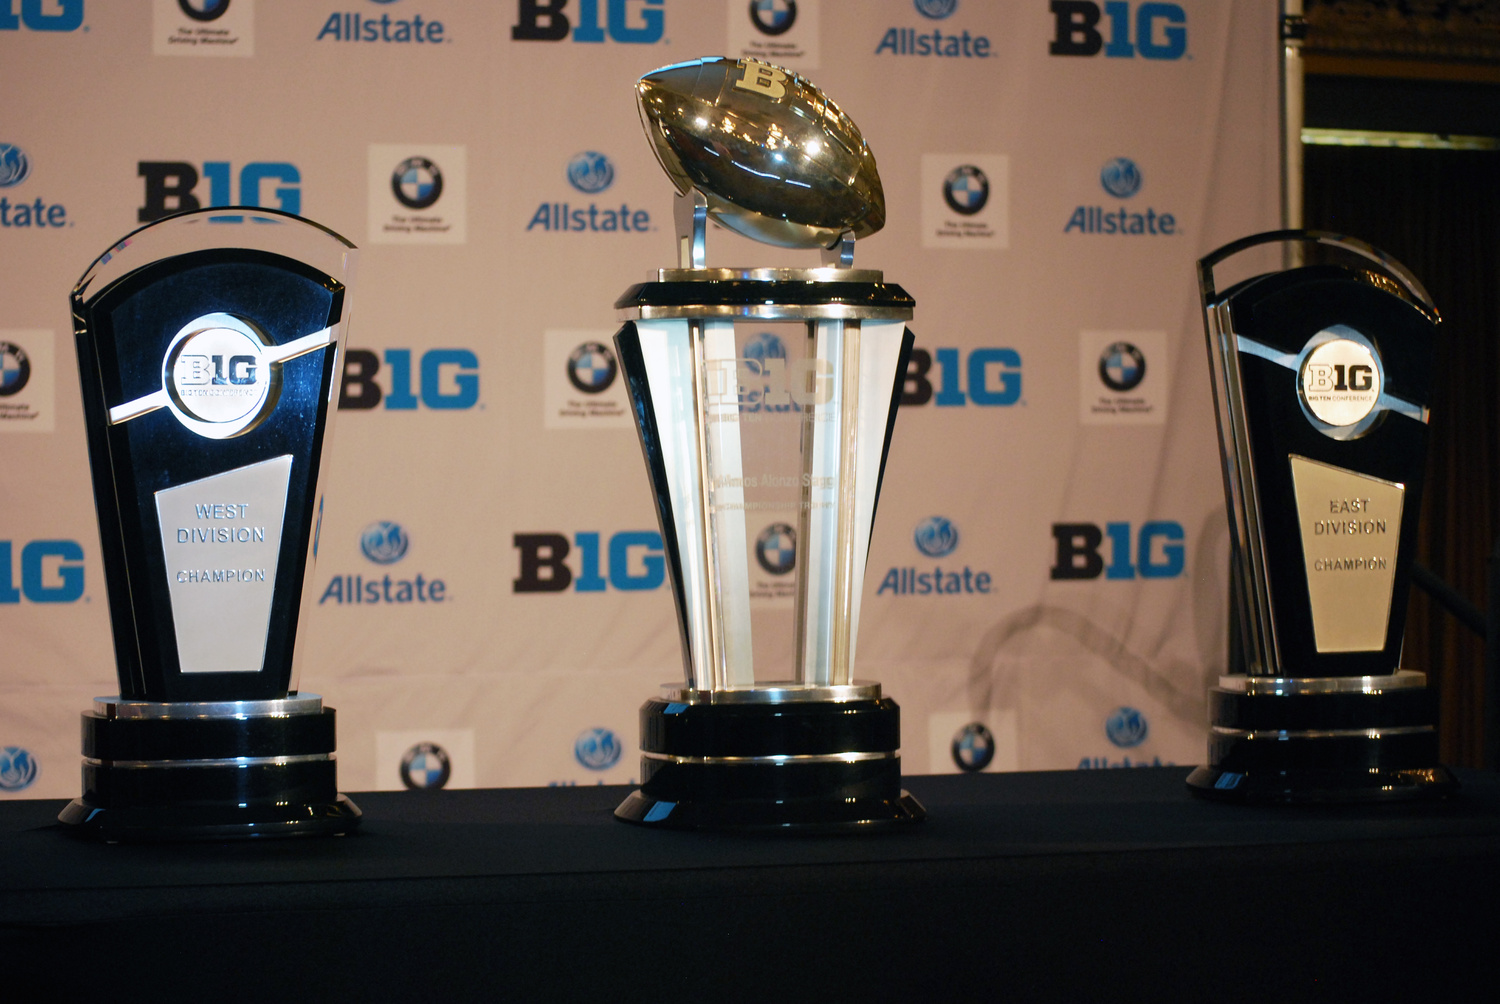 The trophies for the Big Ten West Division (left), Big Ten Championship (center) and the Big Ten East Division sit alongside the podium during the 2014 Big Ten Media Days July 28 in Chicago. Credit: Tim Moody / Lantern sports editor